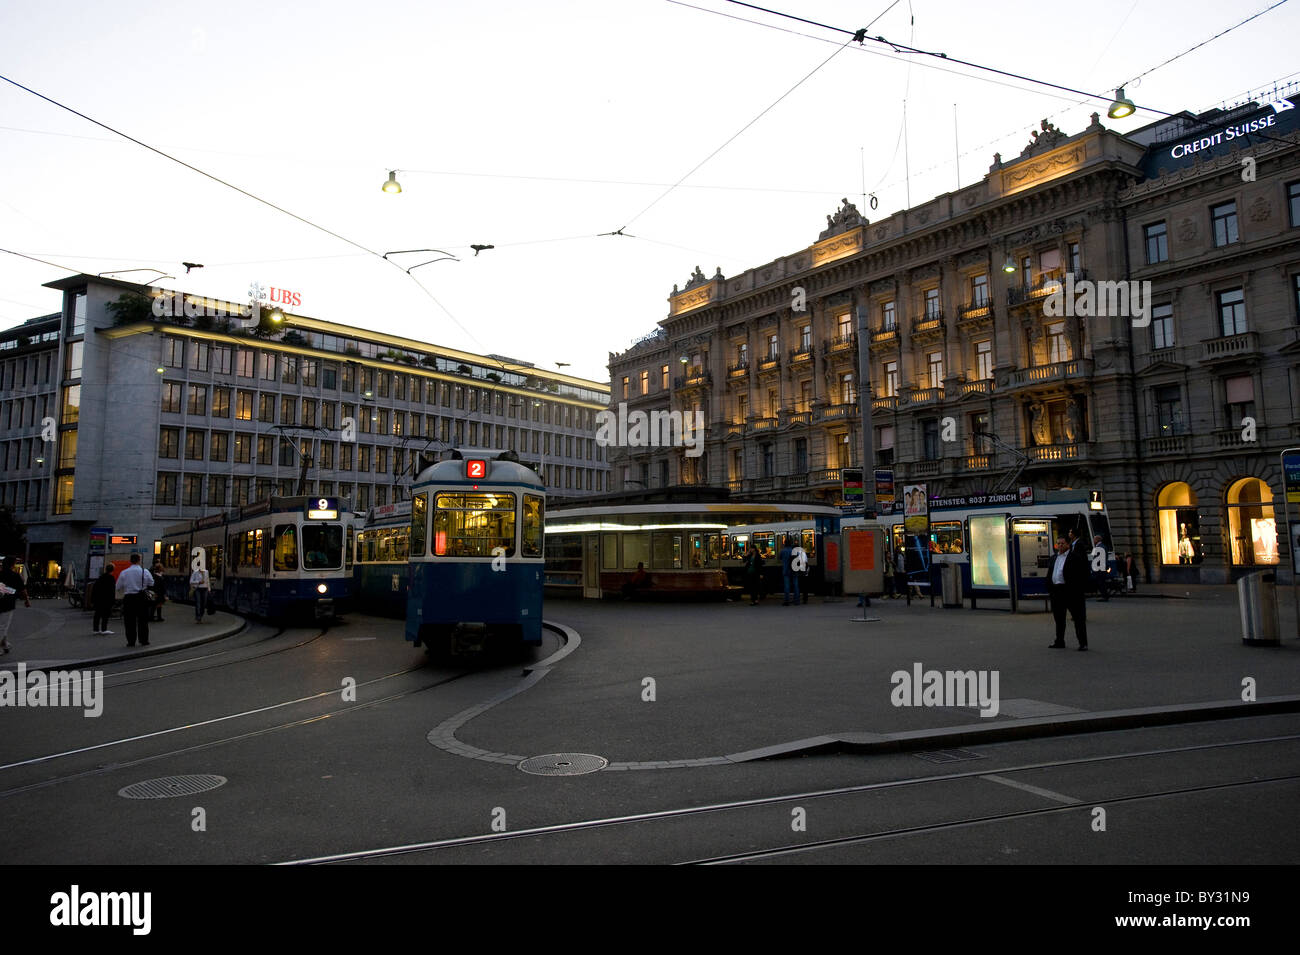 A tram at the Paradeplatz Square and the Bahnhofstrasse, Zurich, Switzerland - Stock Image